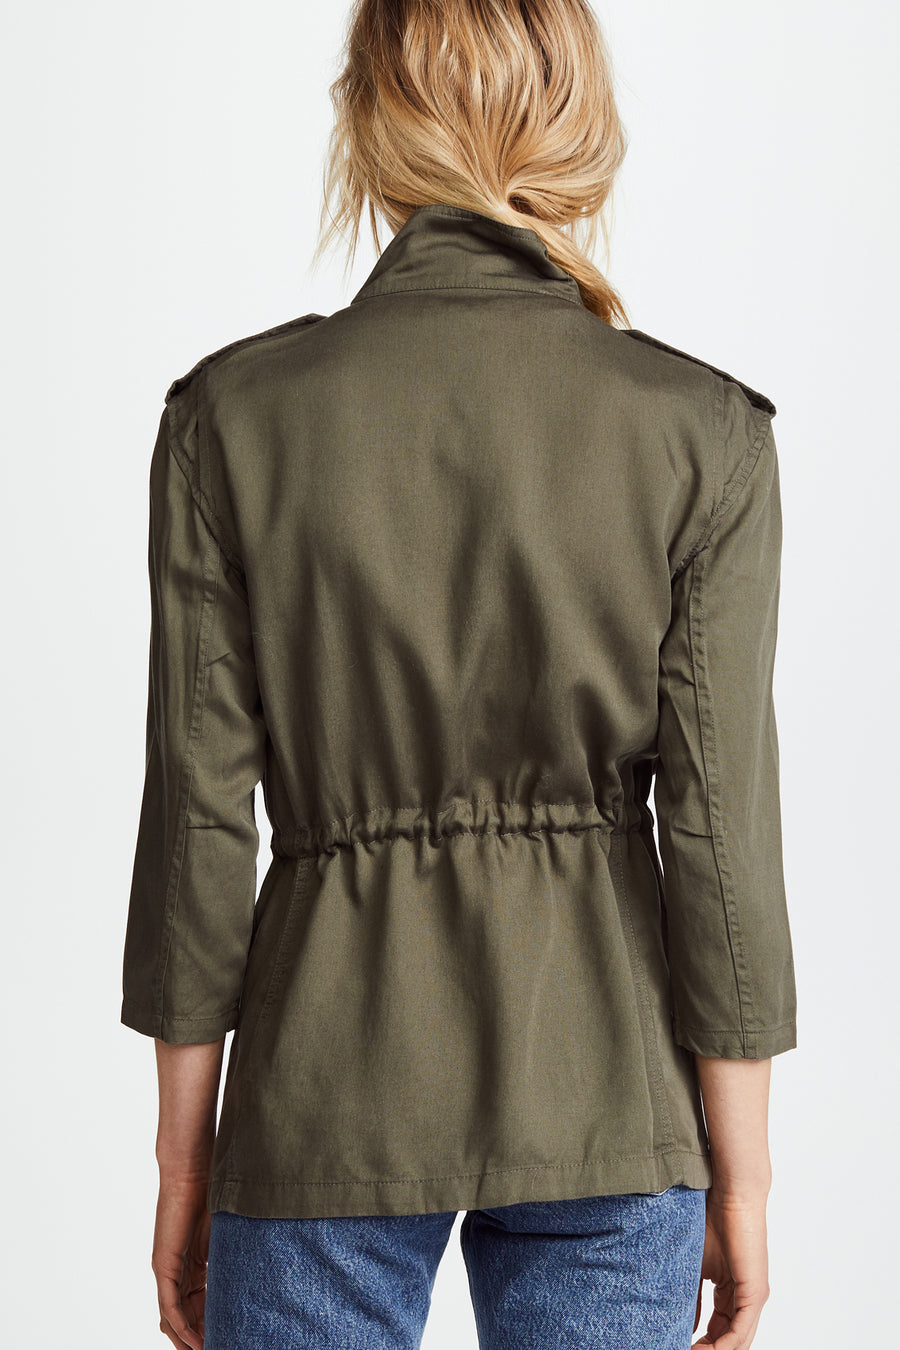 Beekman Military Jacket - Green - Pavilion